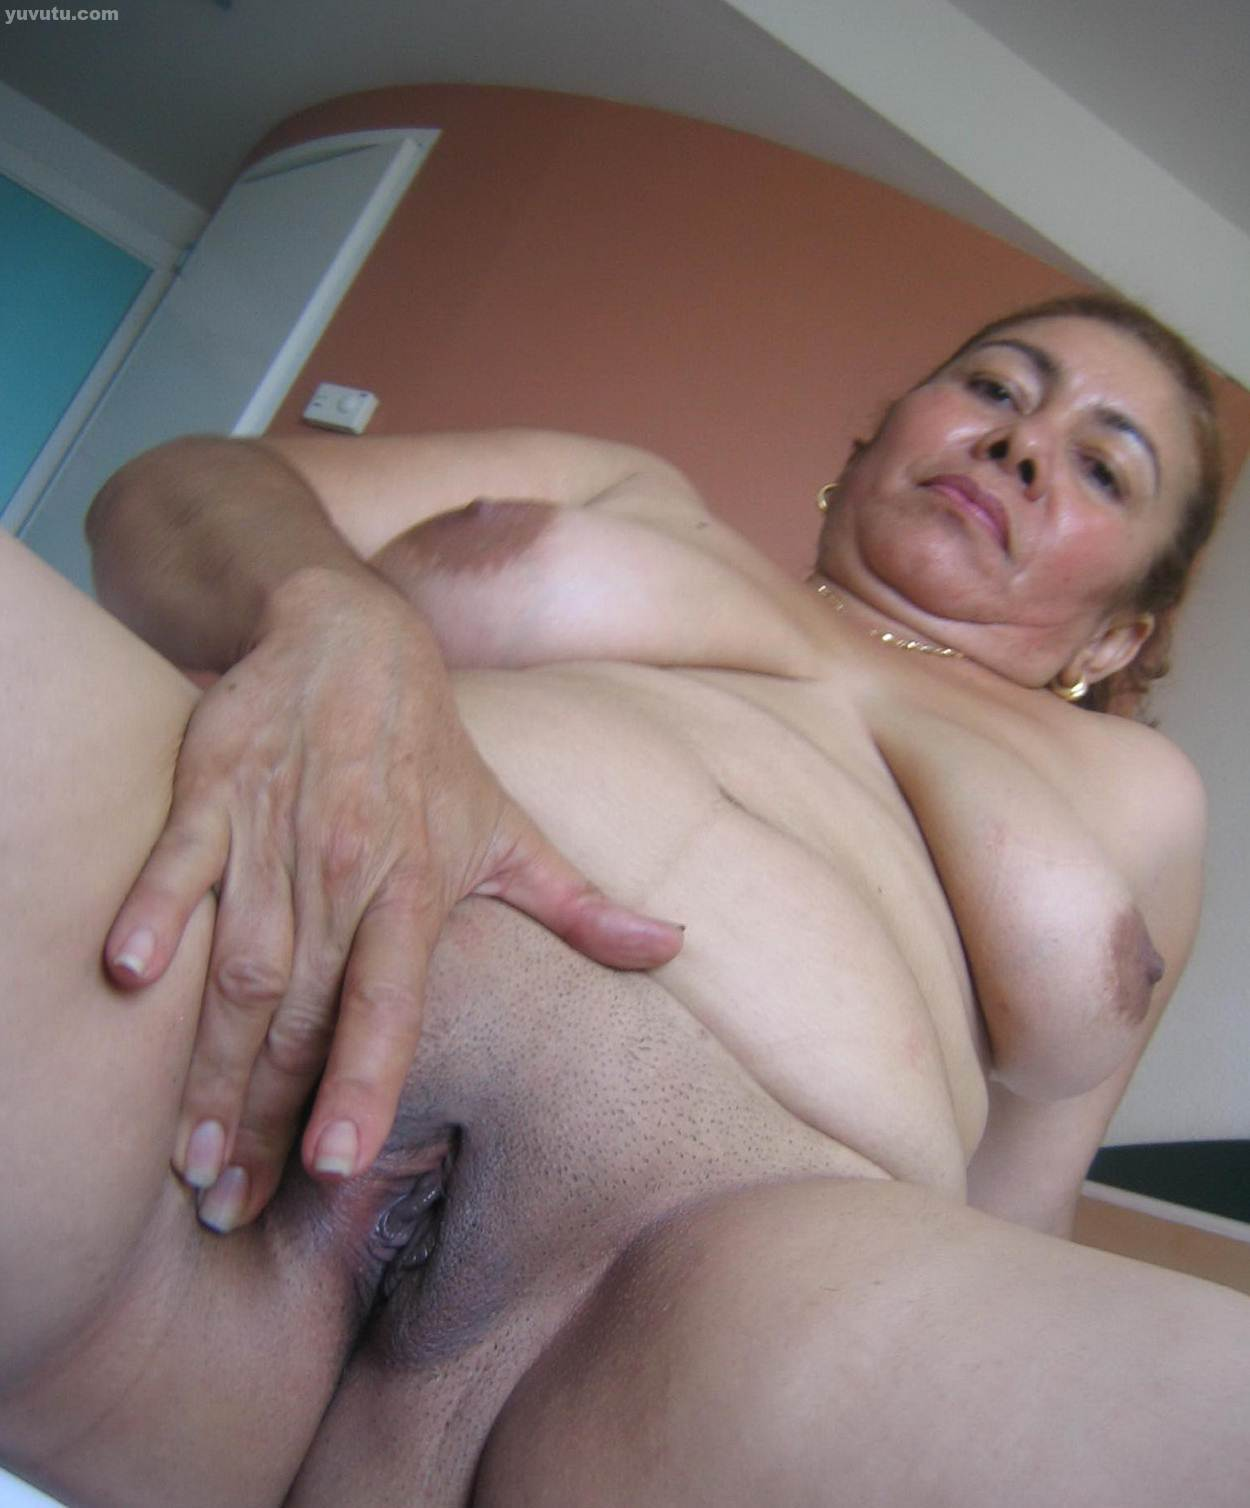 sex flimpjes porno gratis video